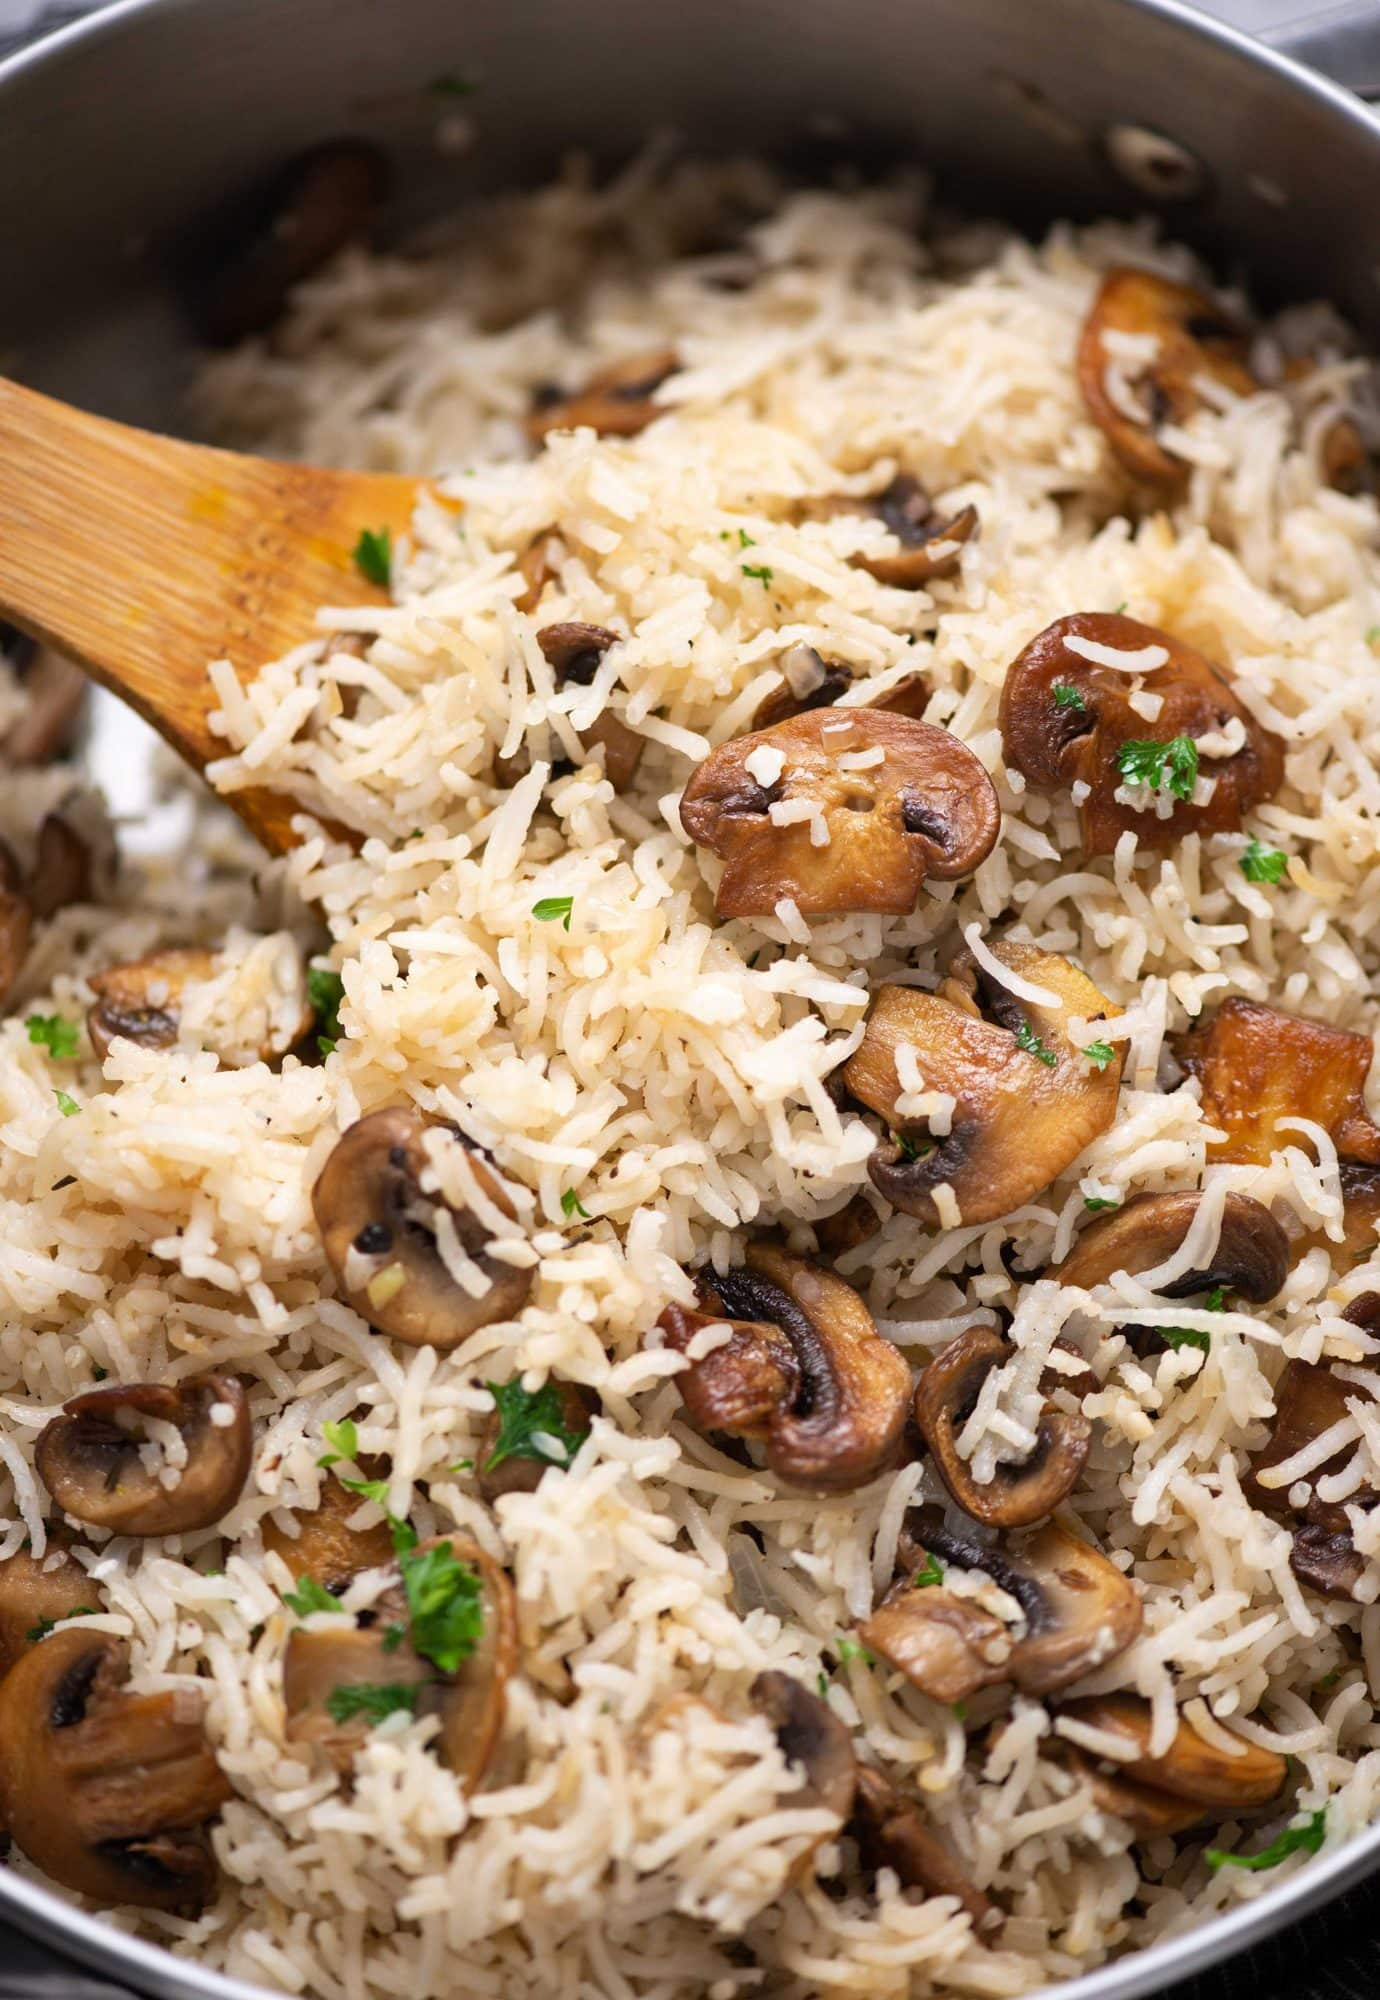 Close-up shot of Mushroom rice with brown sauteed bits of mushroom and garnished with parsley